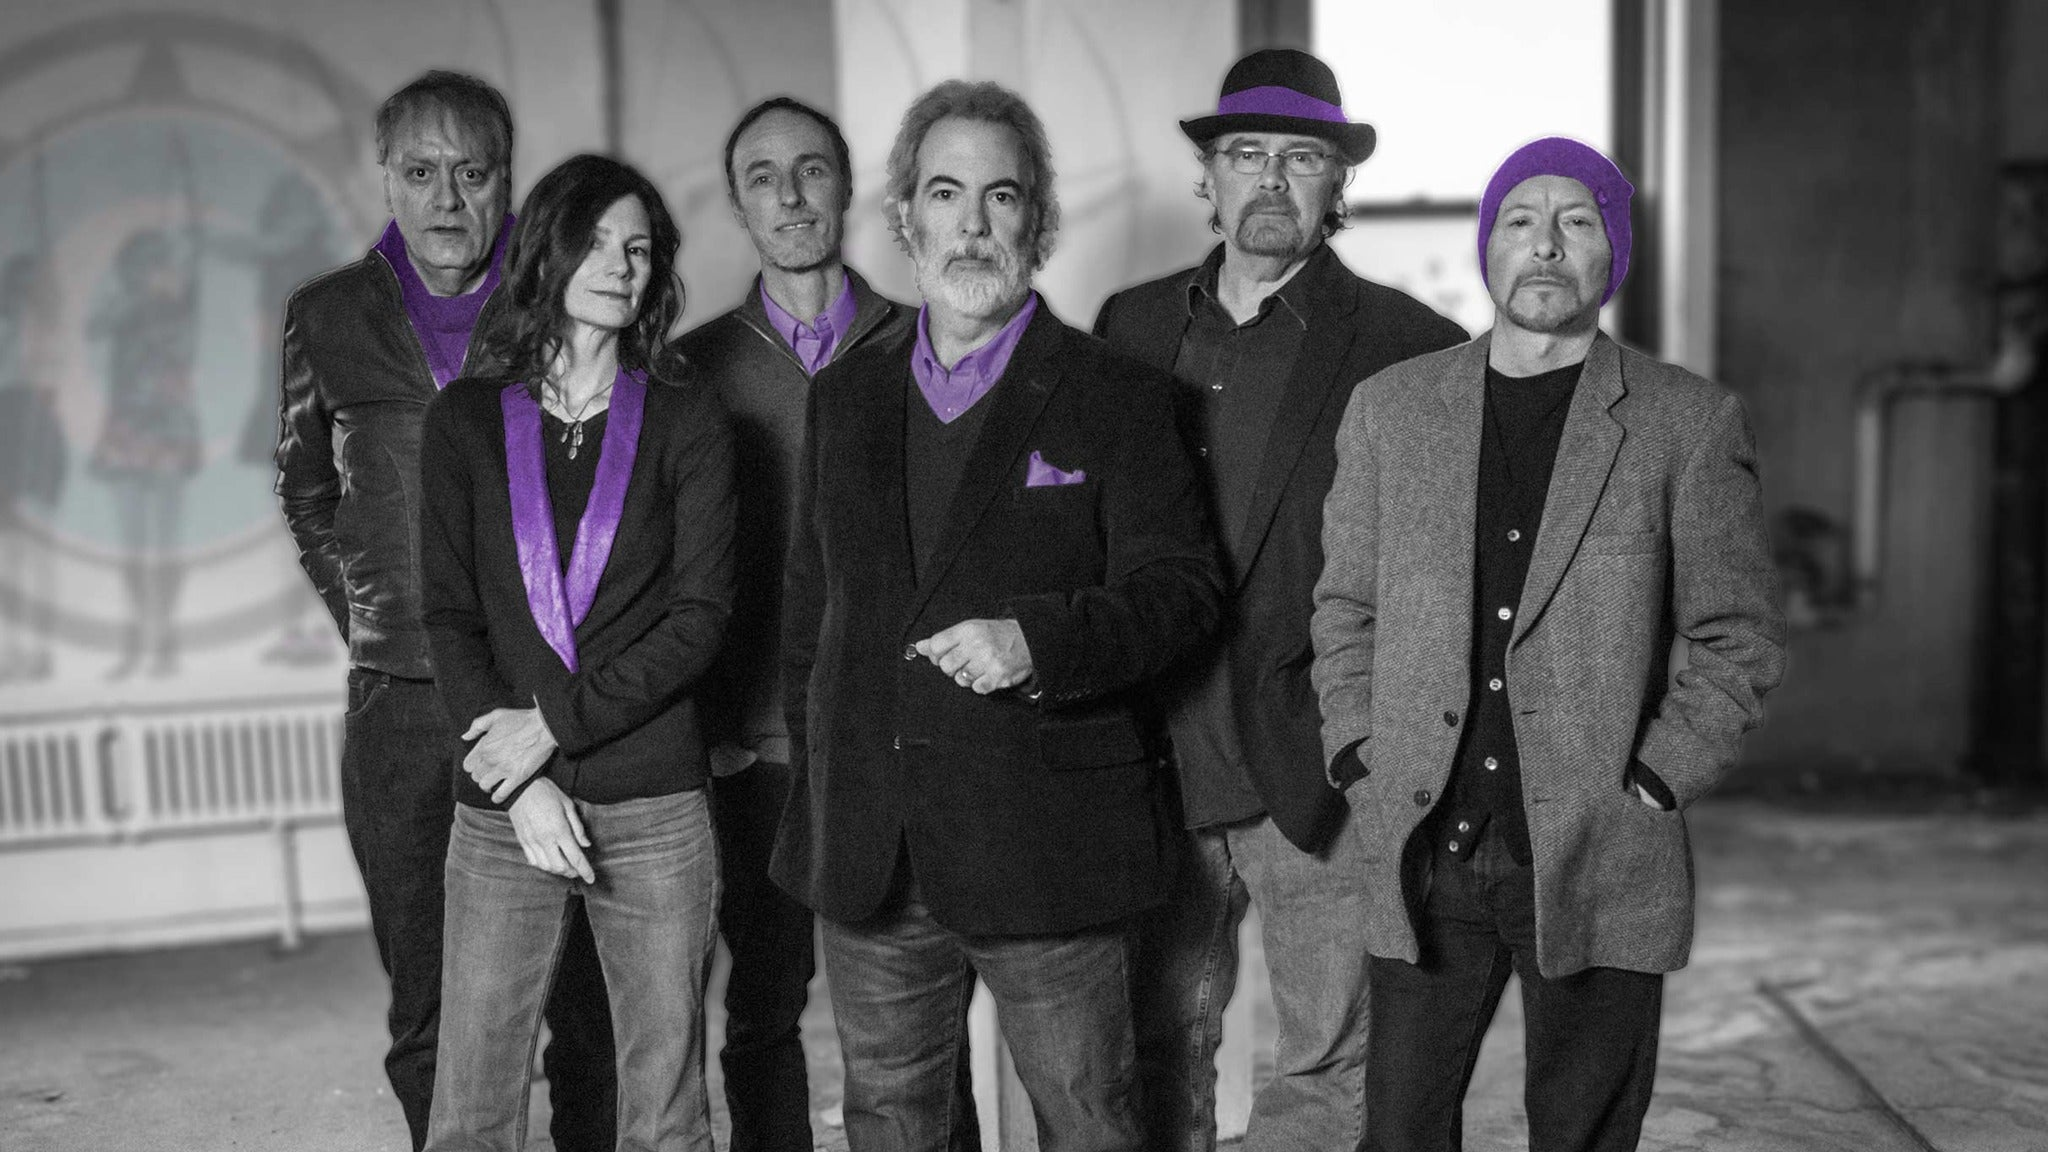 10,000 Maniacs at Marquee Theatre